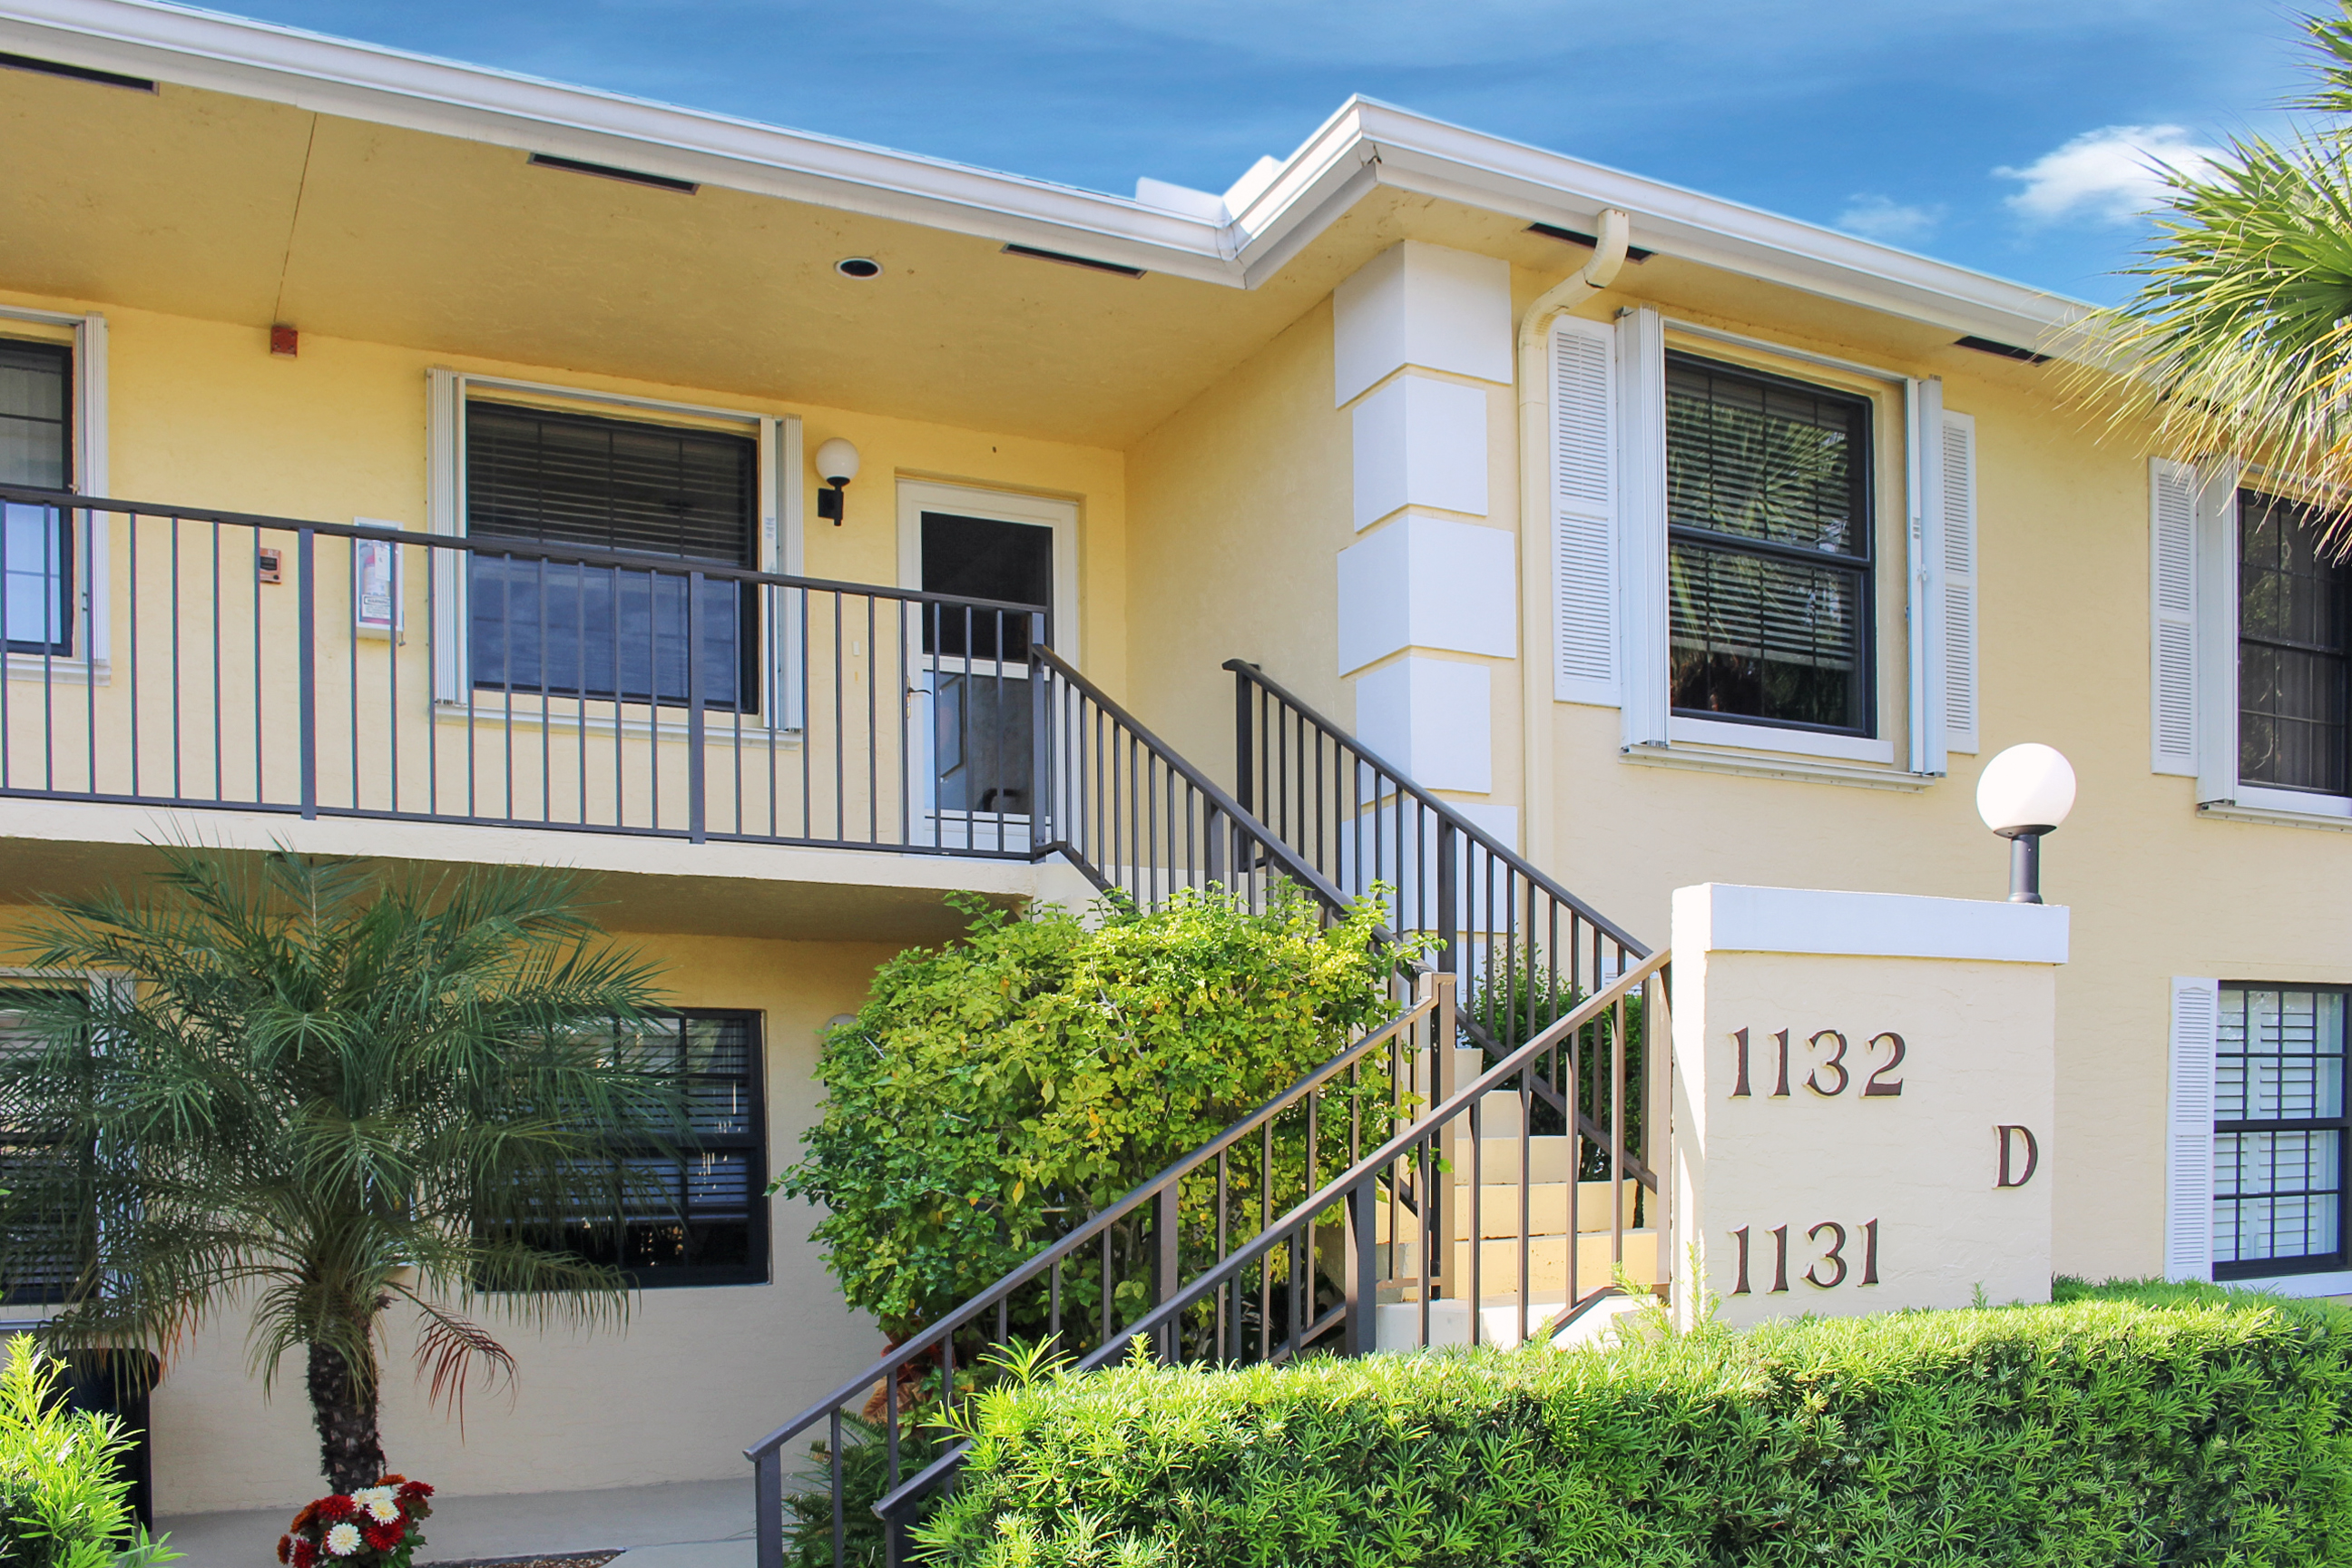 1131 Keystone Dr #D, Jupiter, FL 33458 top Jupiter agents sold and found the buyer in Keystone Condo